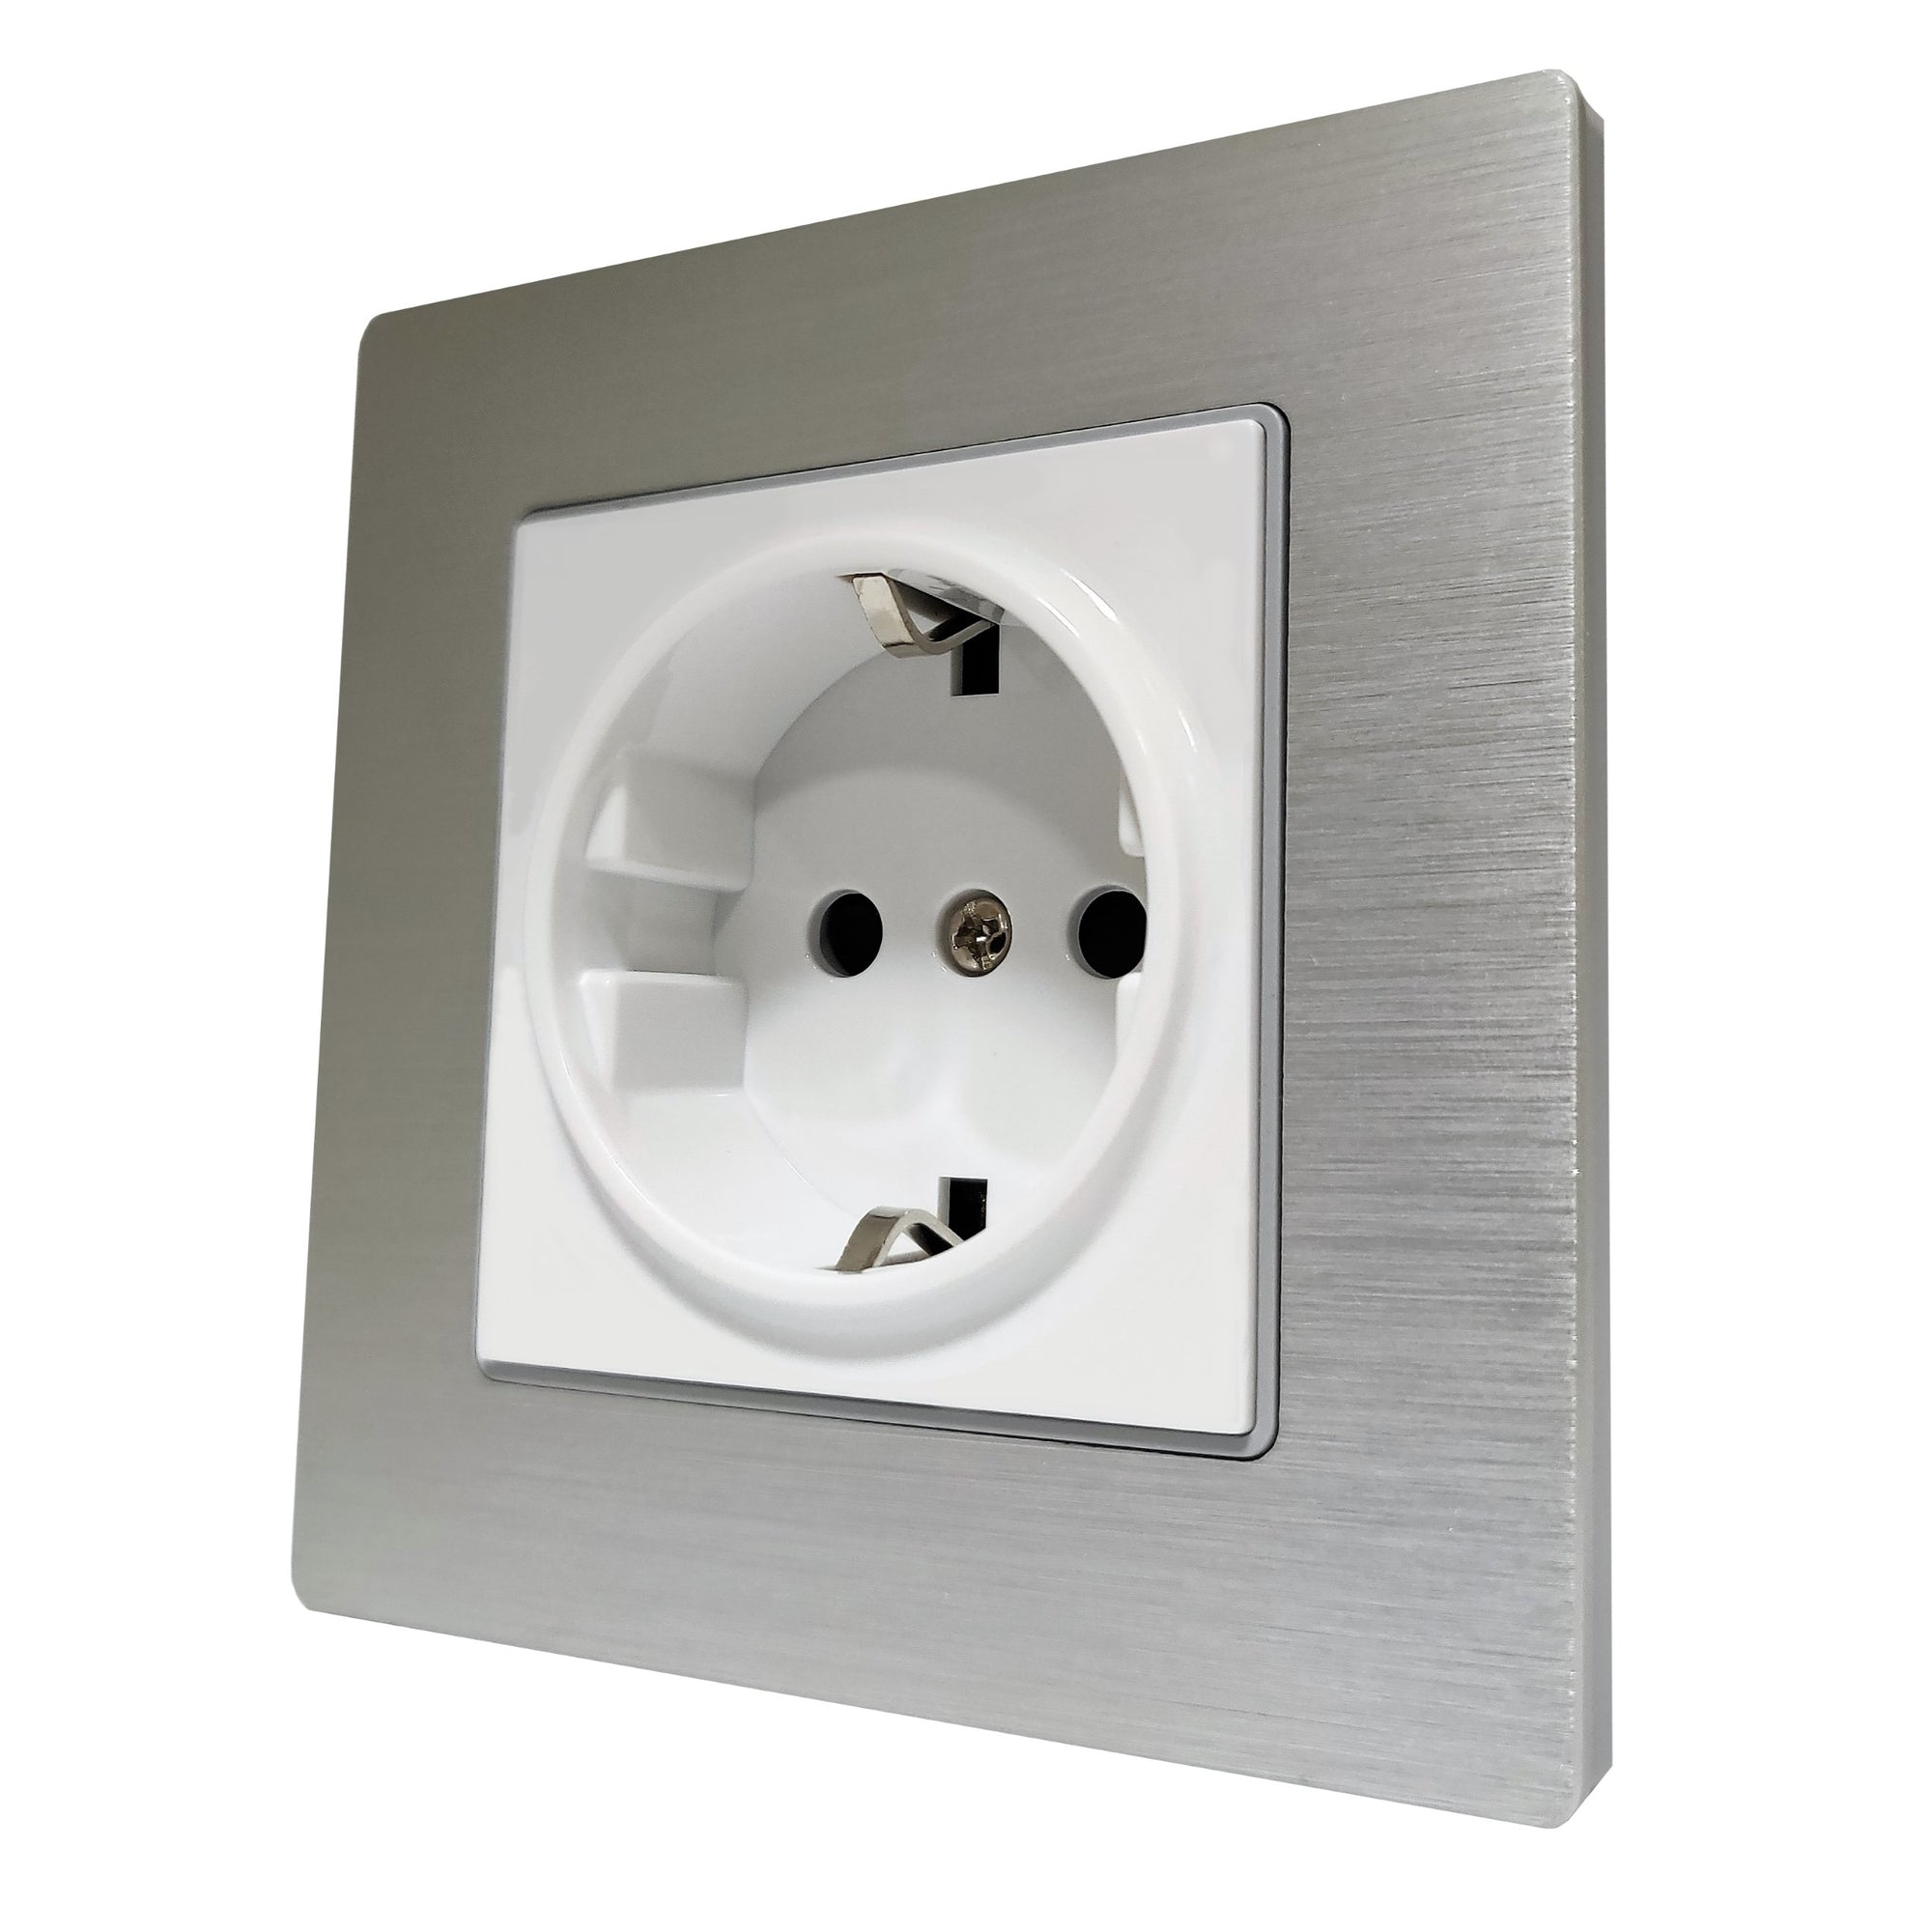 Single Schuko EU 16A 2-Pin AC Wall Power Socket in Silver Brushed Alum Frame & White Centre